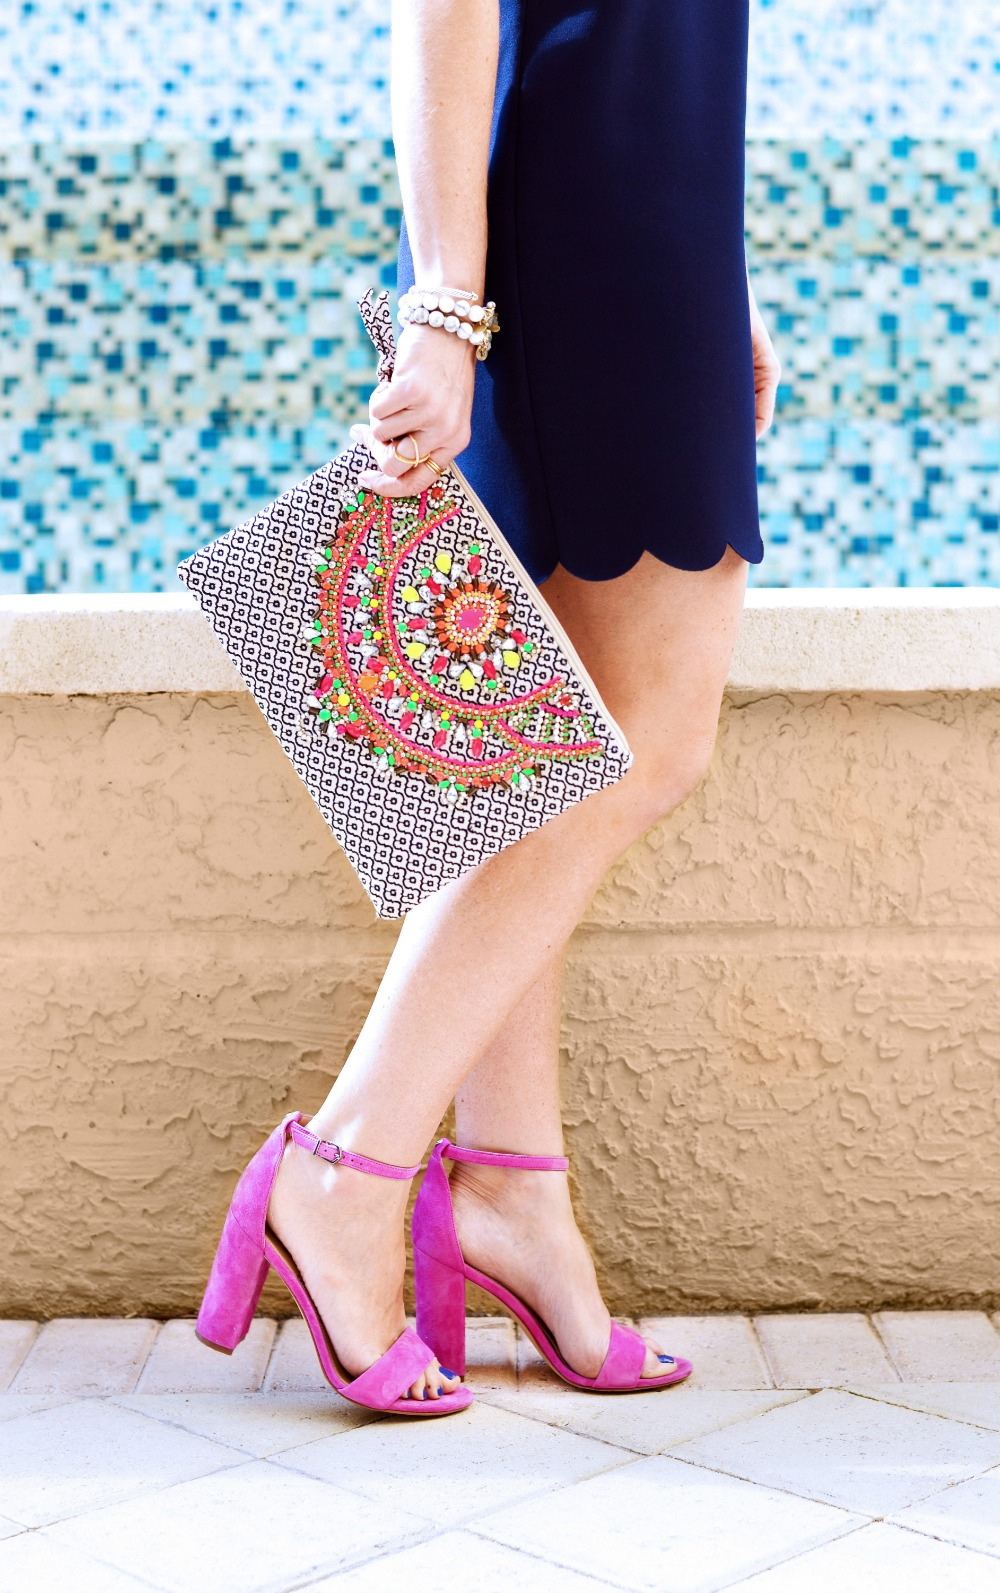 This season's necessary accessories: an embroidered clutch & statement making heels // the modern savvy